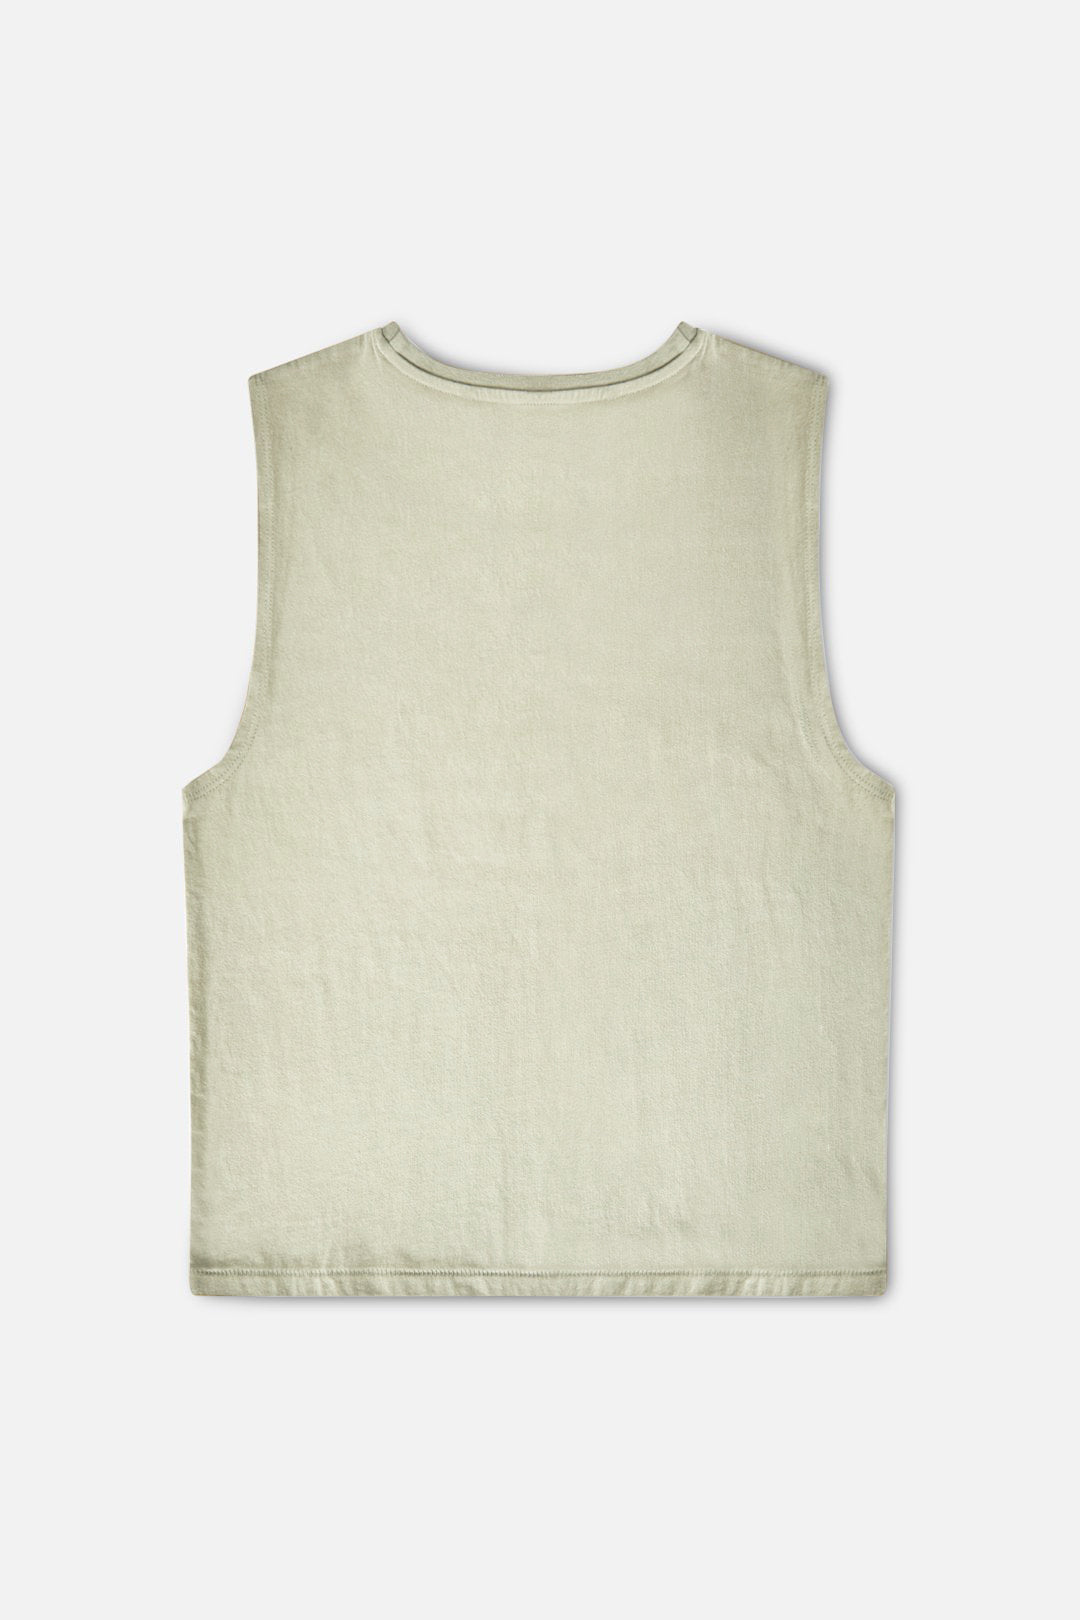 Indie Muscle Tee - Light Sage